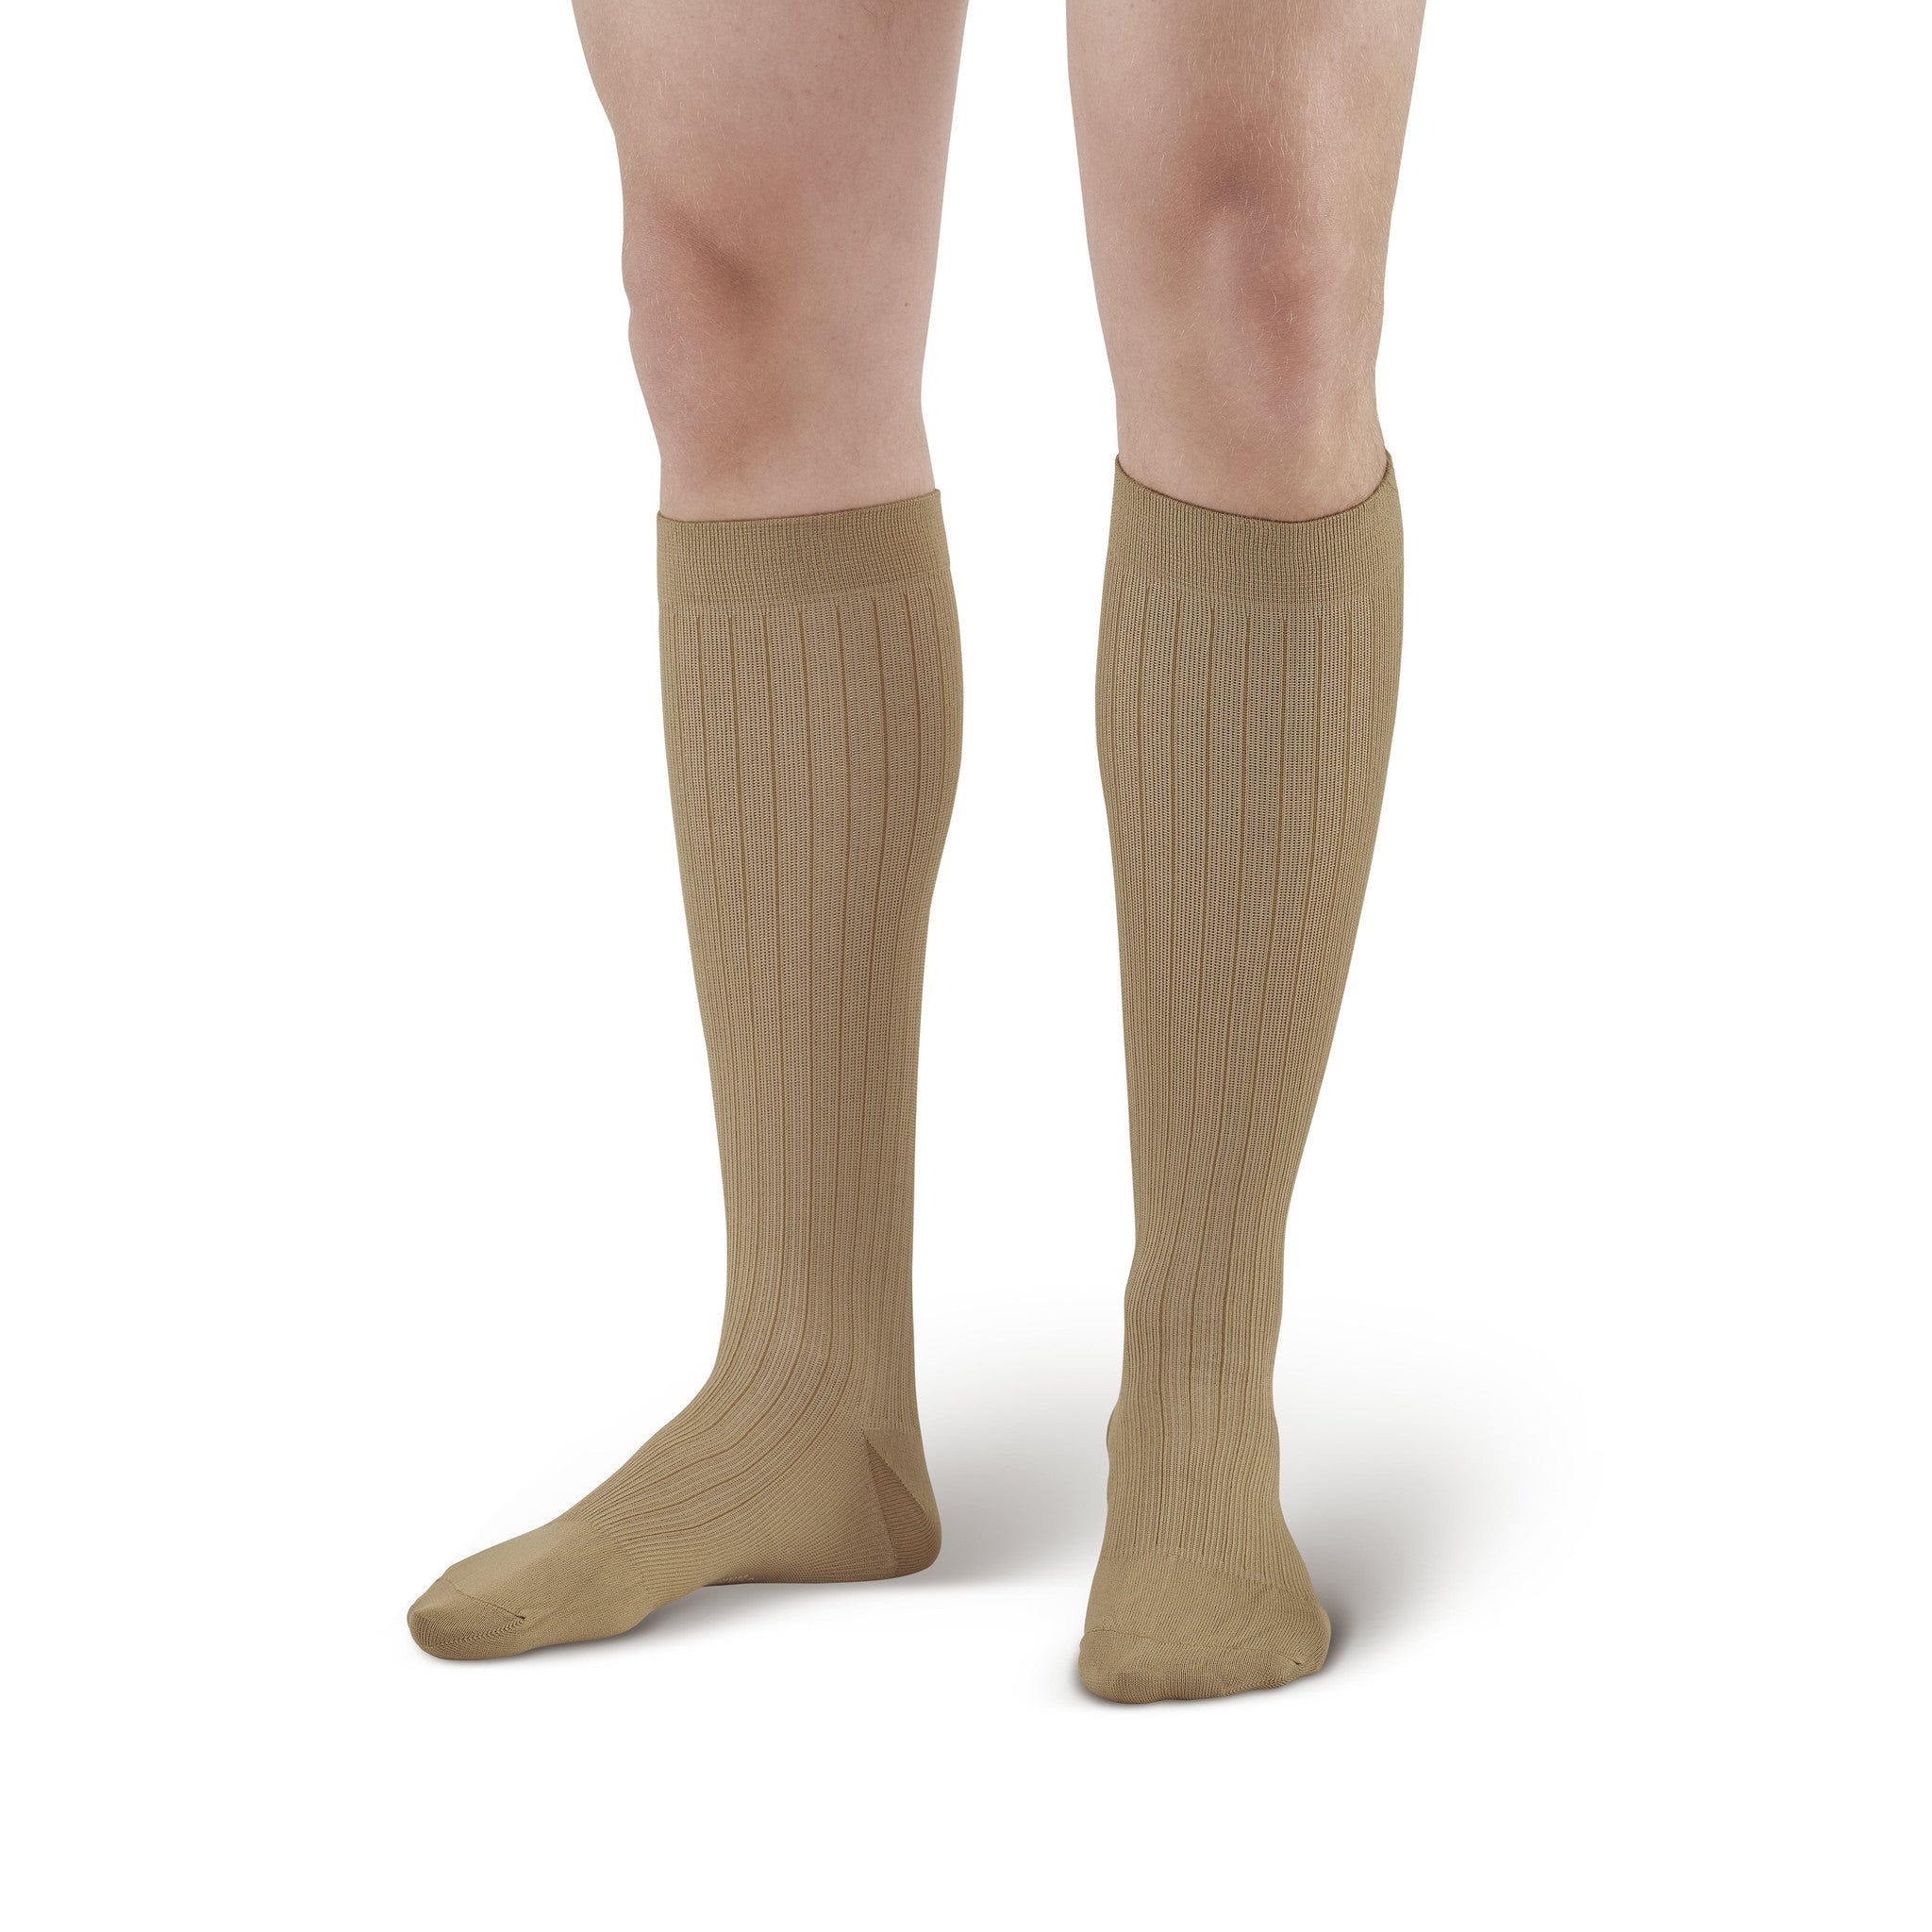 9ddaa29adc ... Ames Walker Compression Knee High Khaki Dress Socks - 20-30 mmHg ...